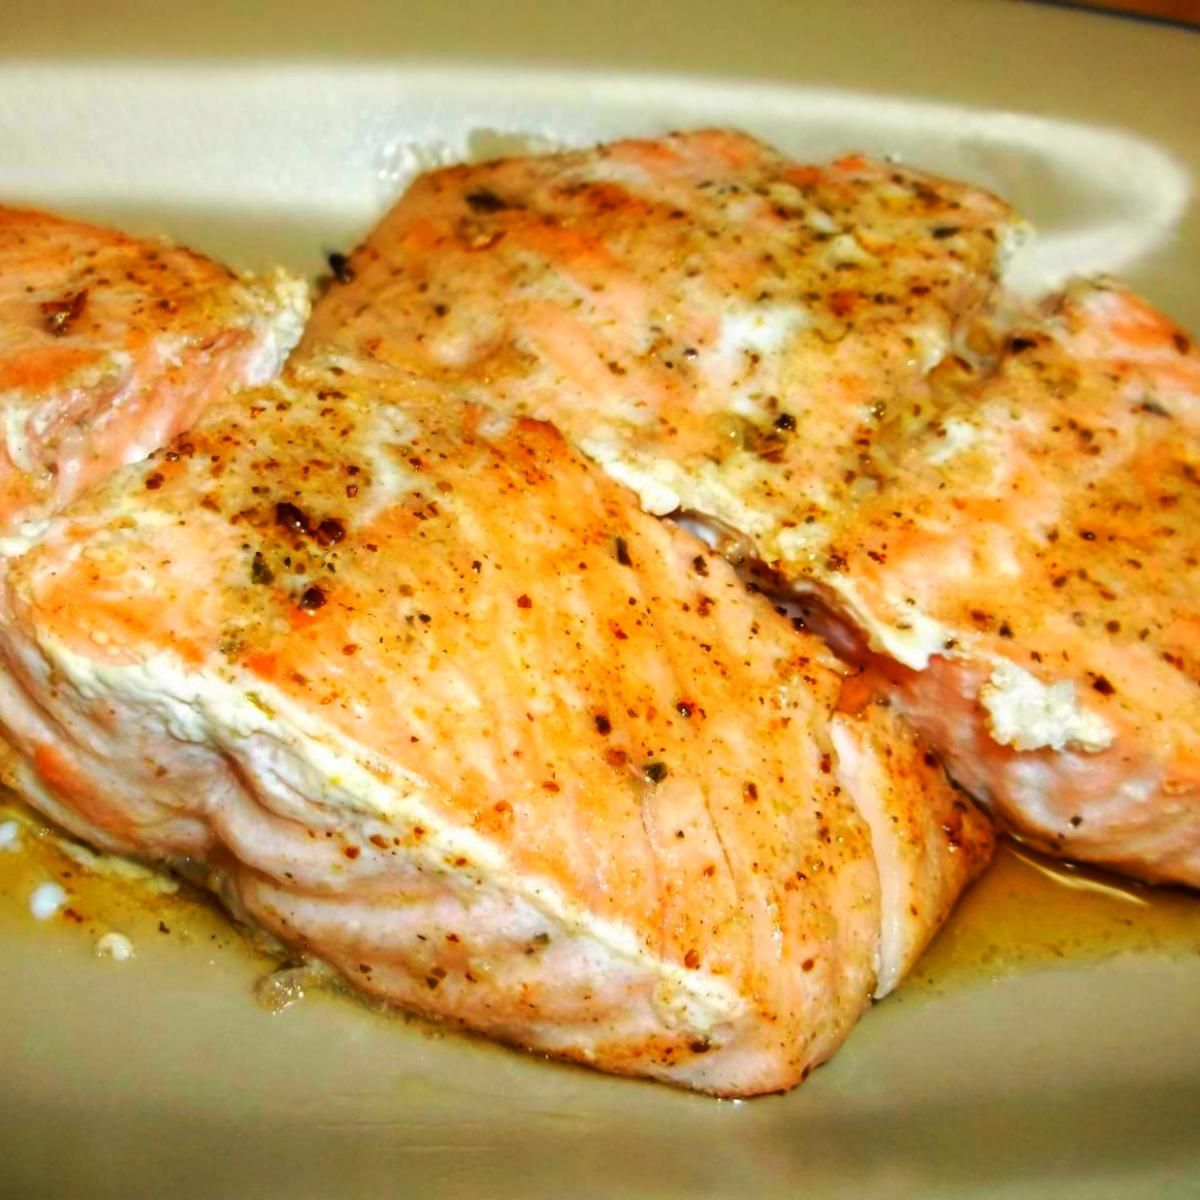 Buttery Baked Salmon Recipe Easy Salmon Recipes Baked Salmon Baked Salmon Recipes